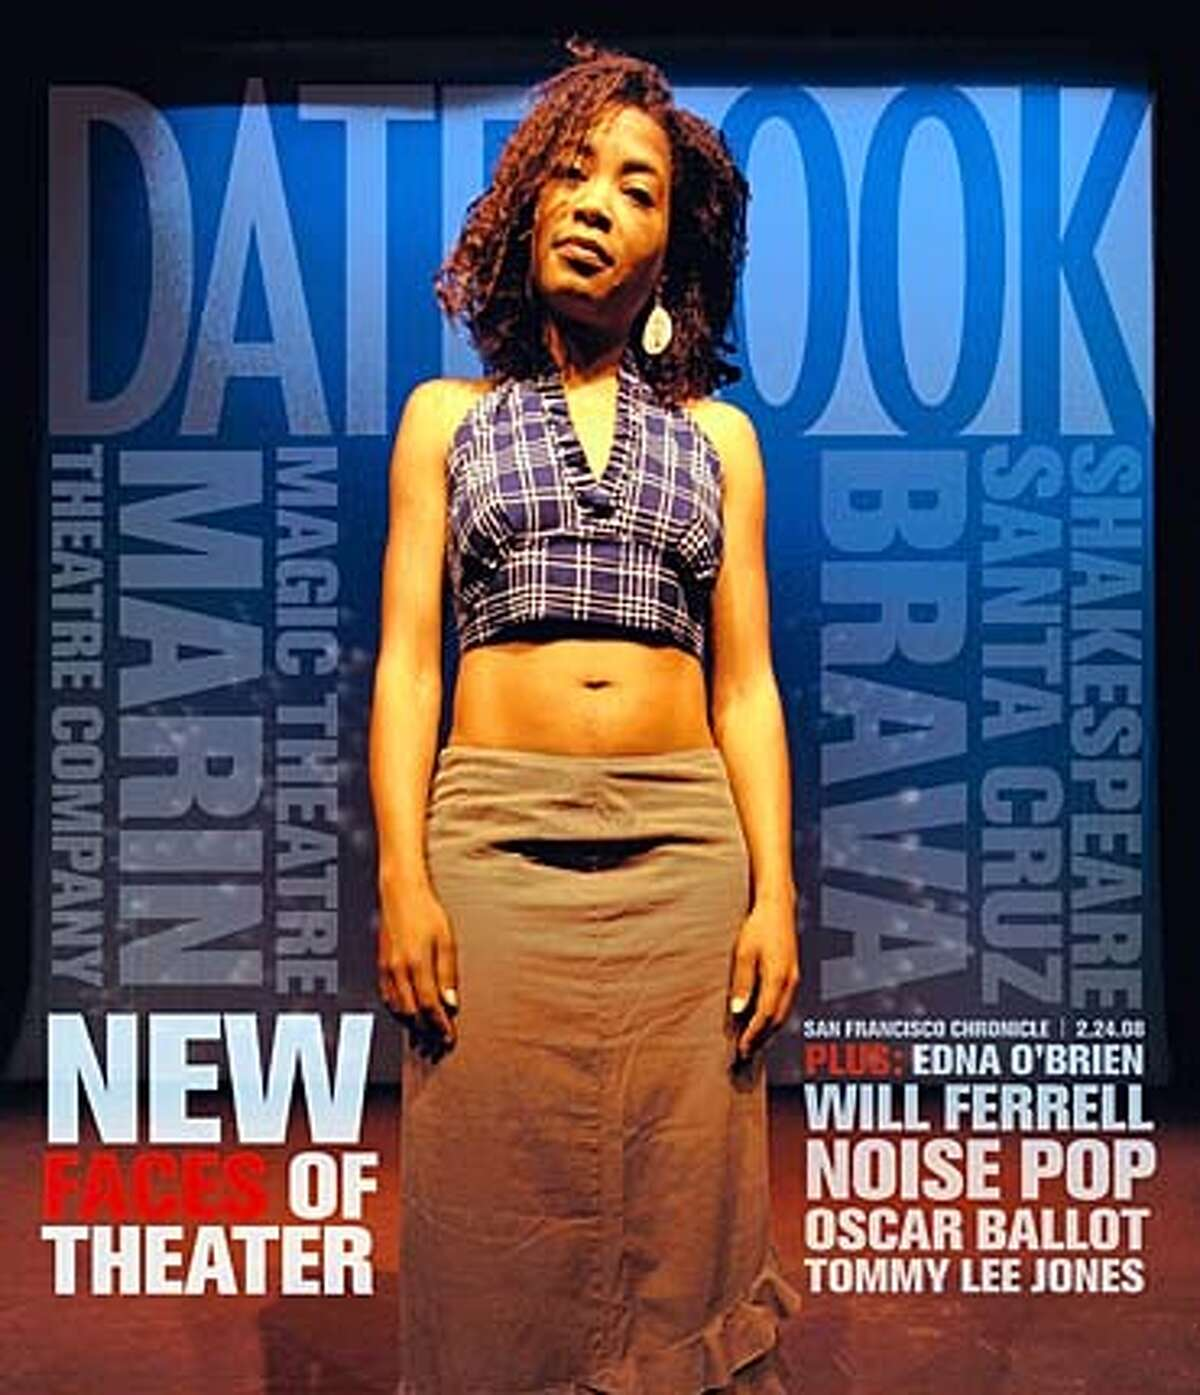 Datebook Cover